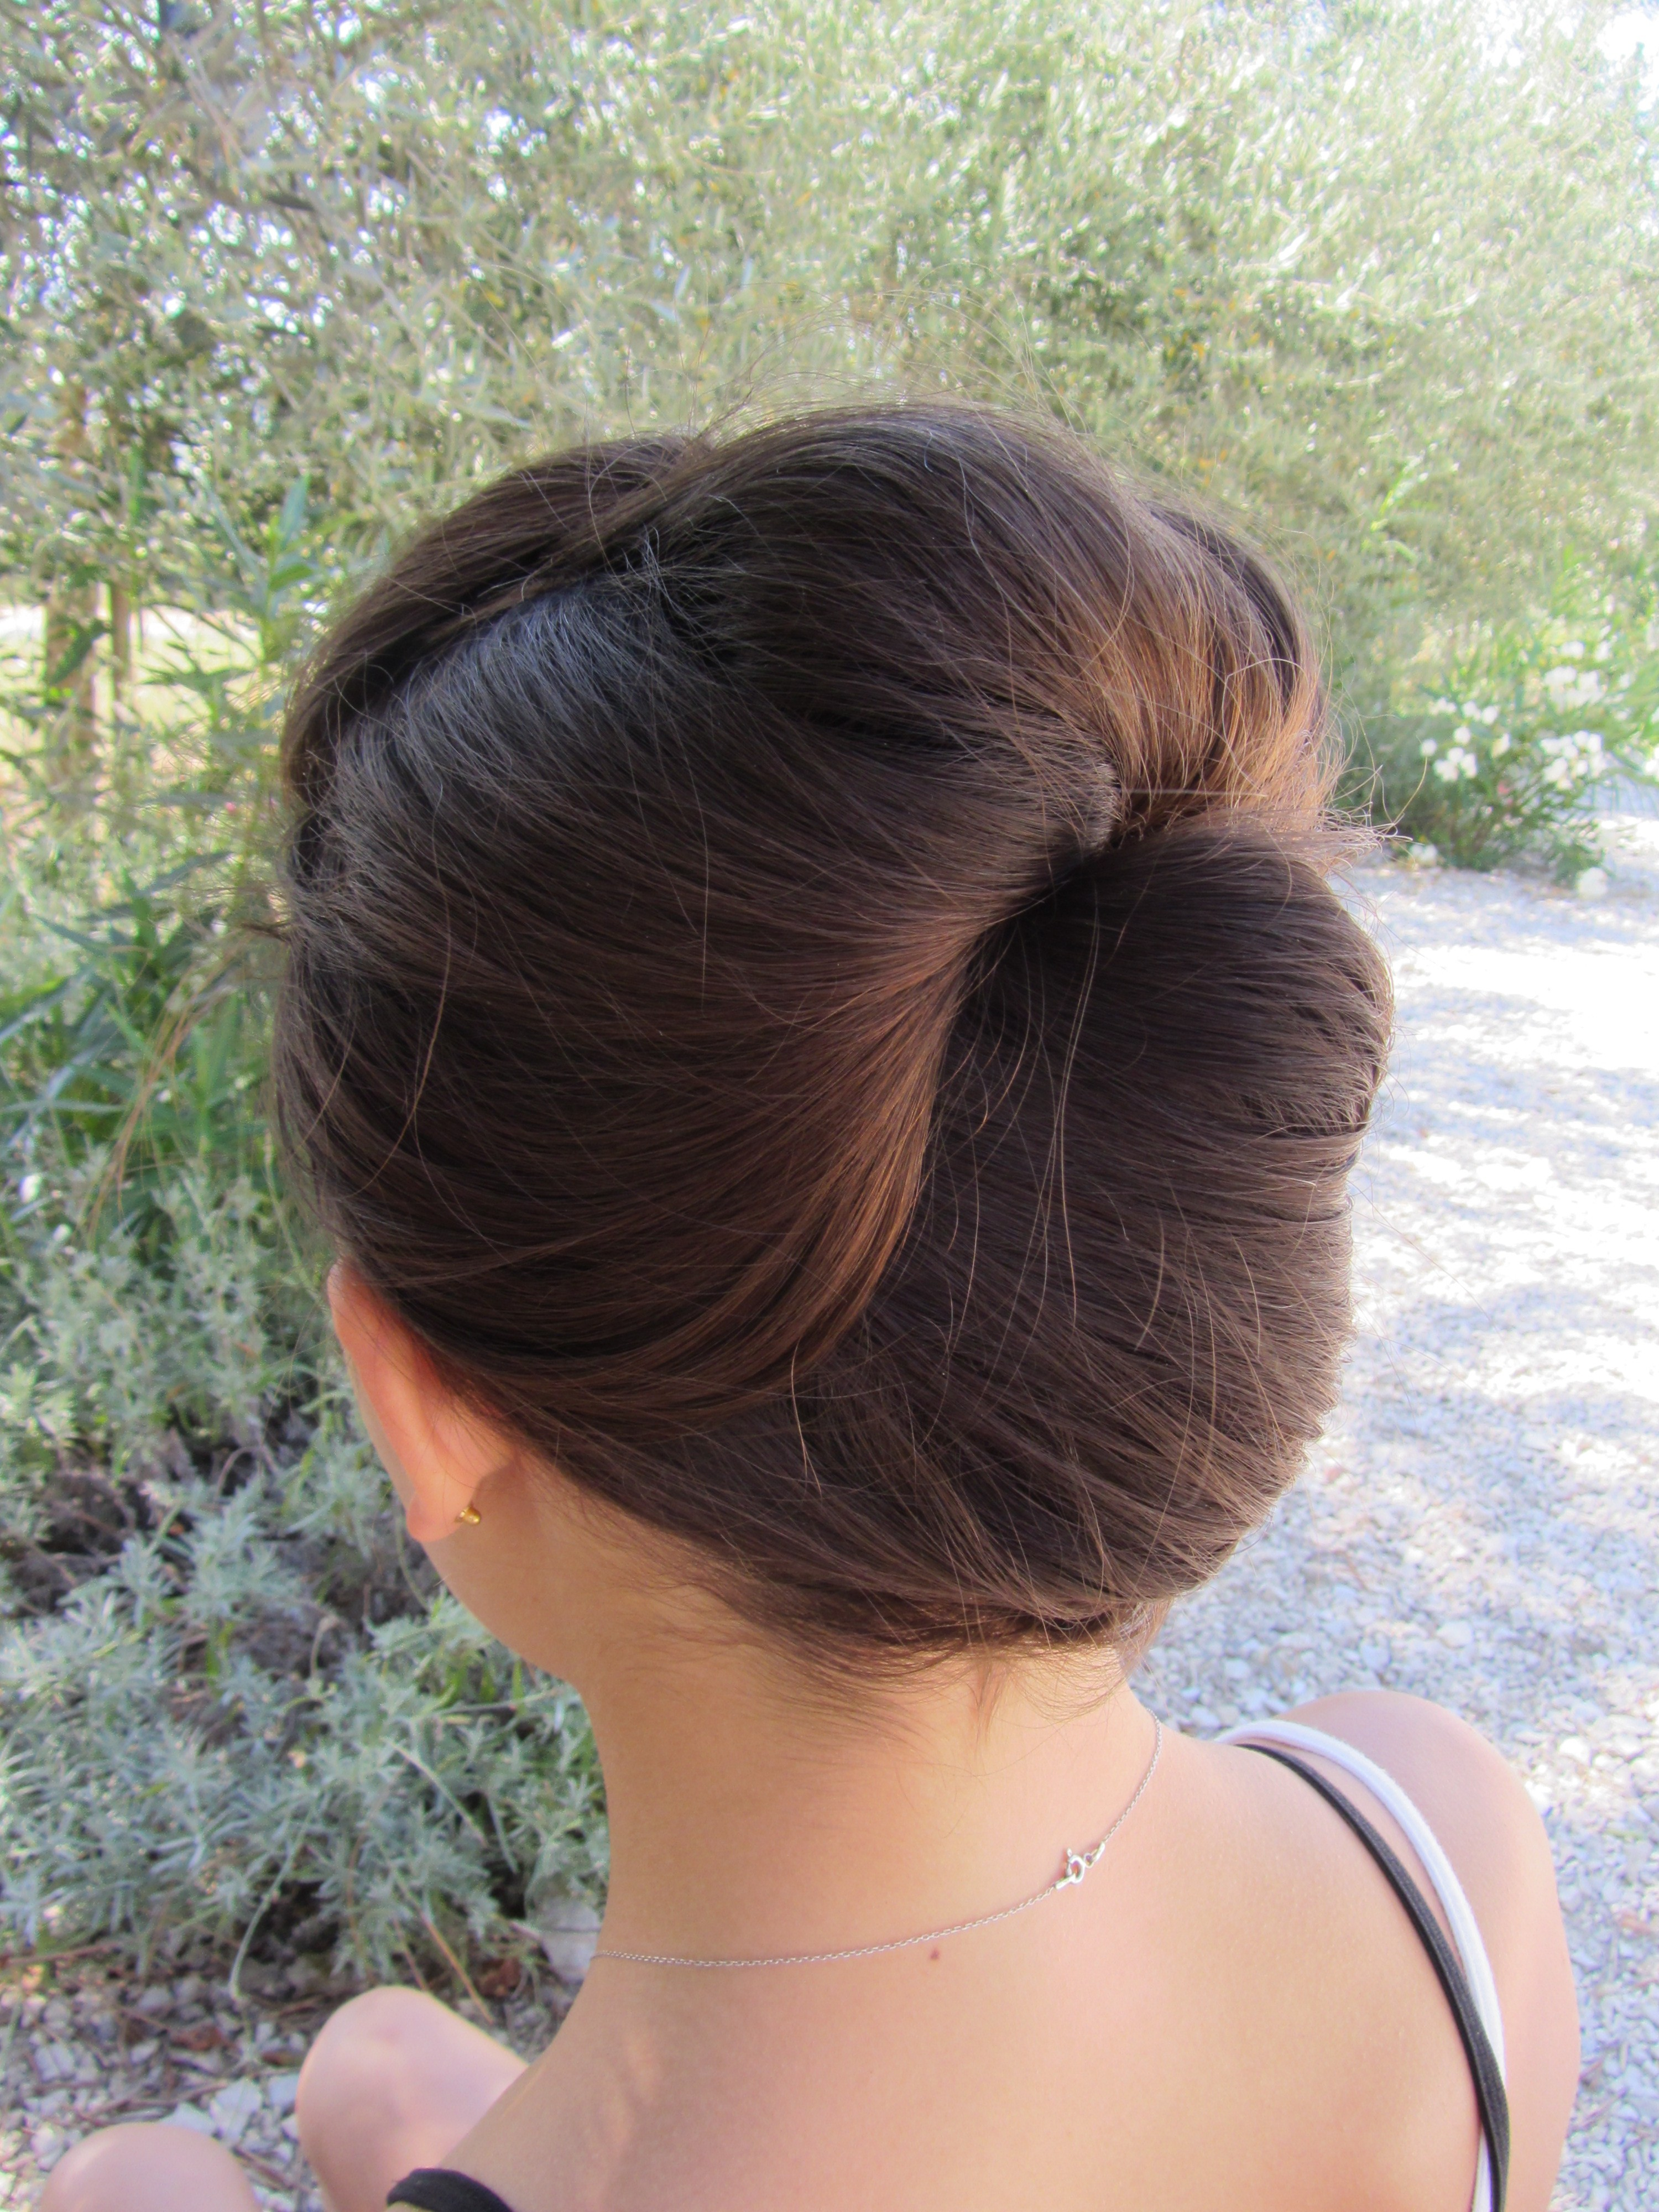 How to: Double poof french twist